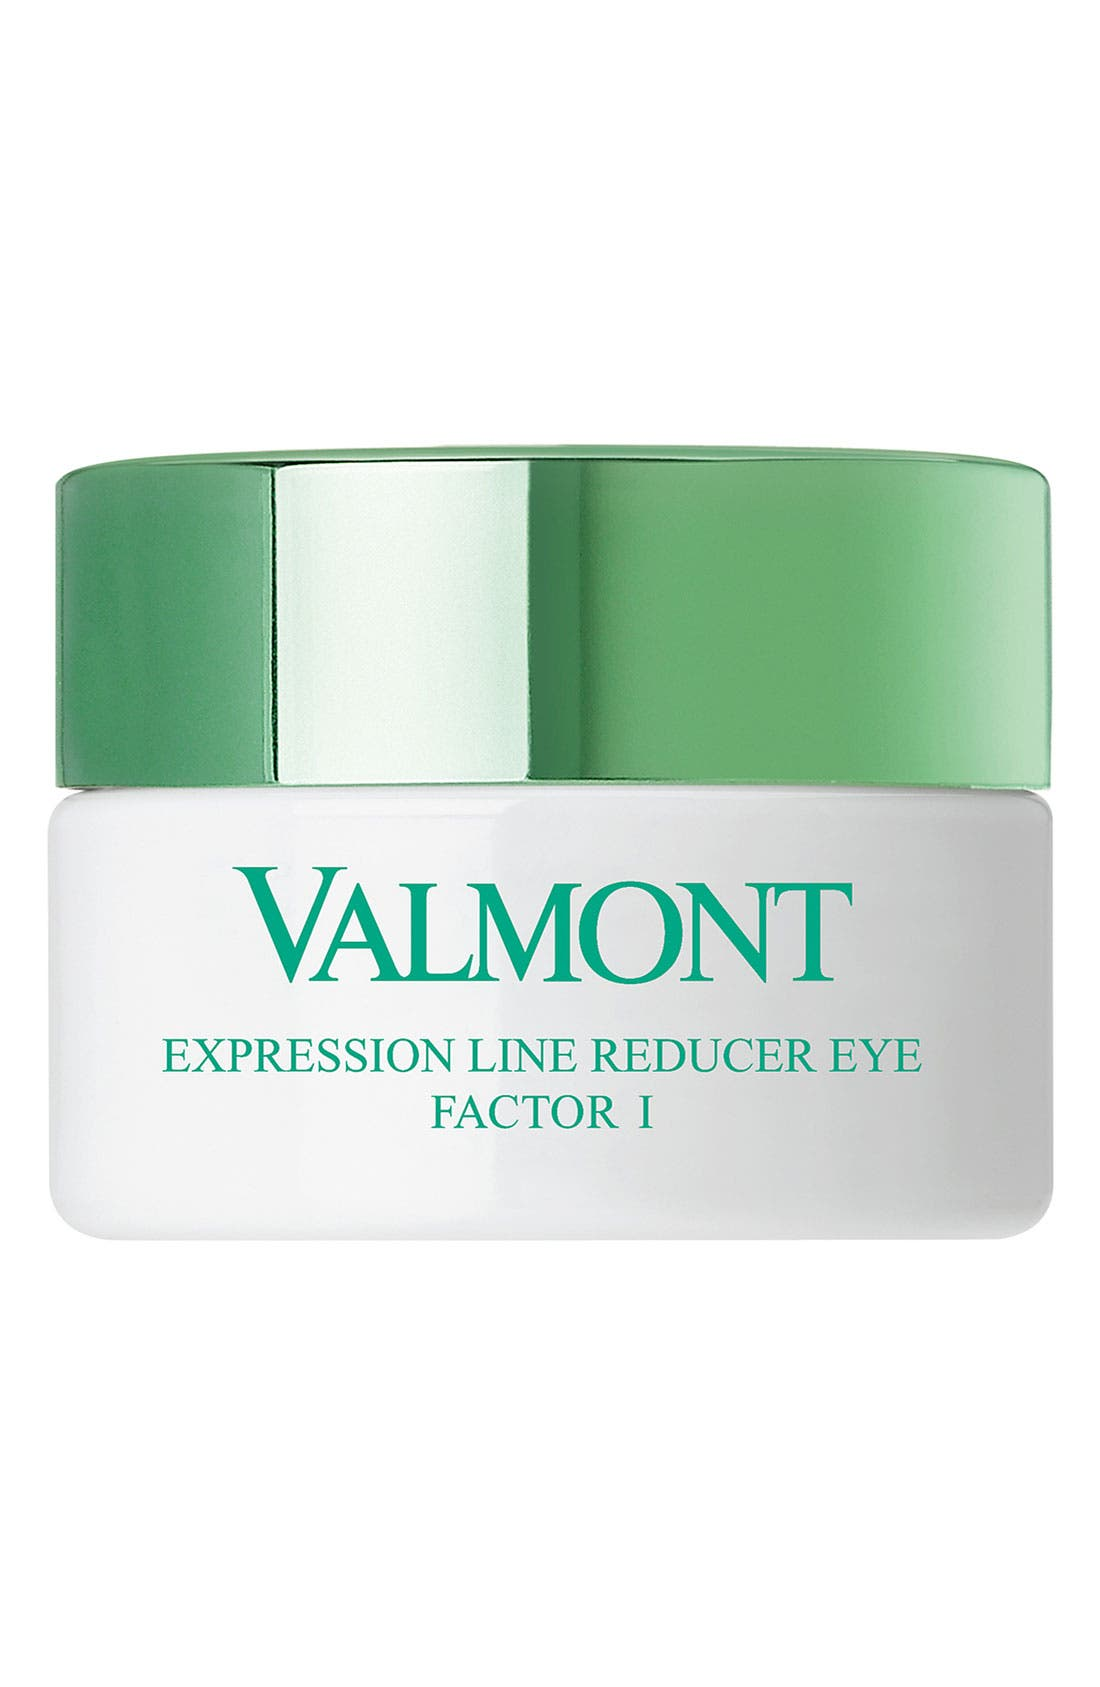 Valmont 'Expression Line Reducer Eye Factor I' Cream